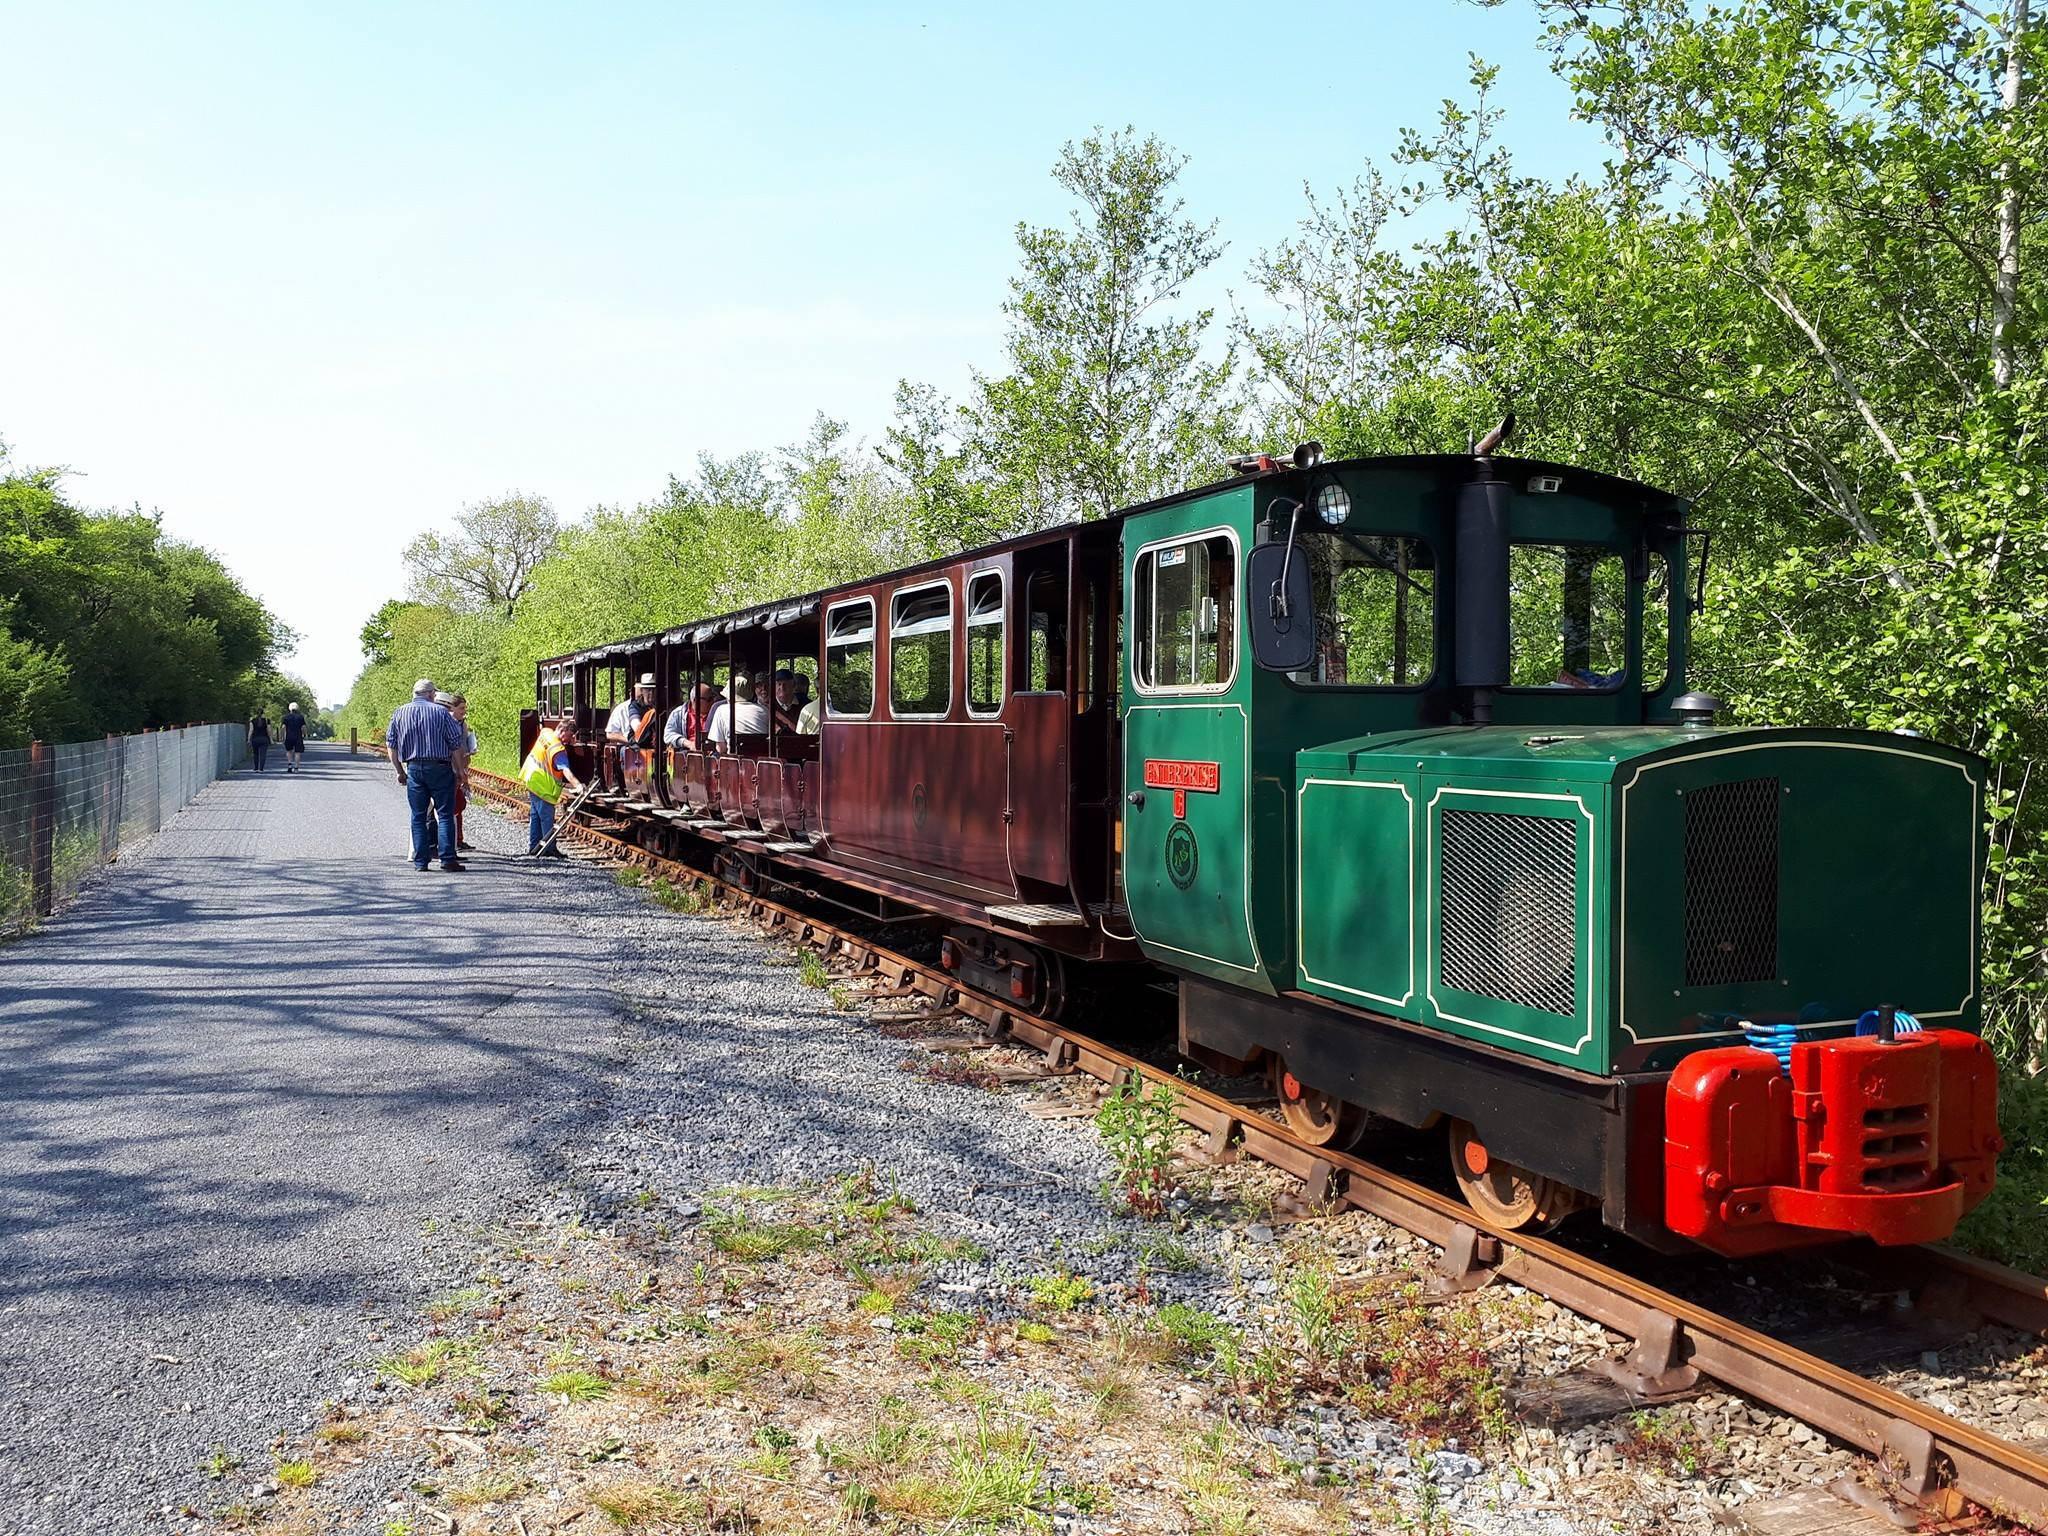 The Déise Greenway Tour is headed for Waterford and Suir Valley Railway this Friday